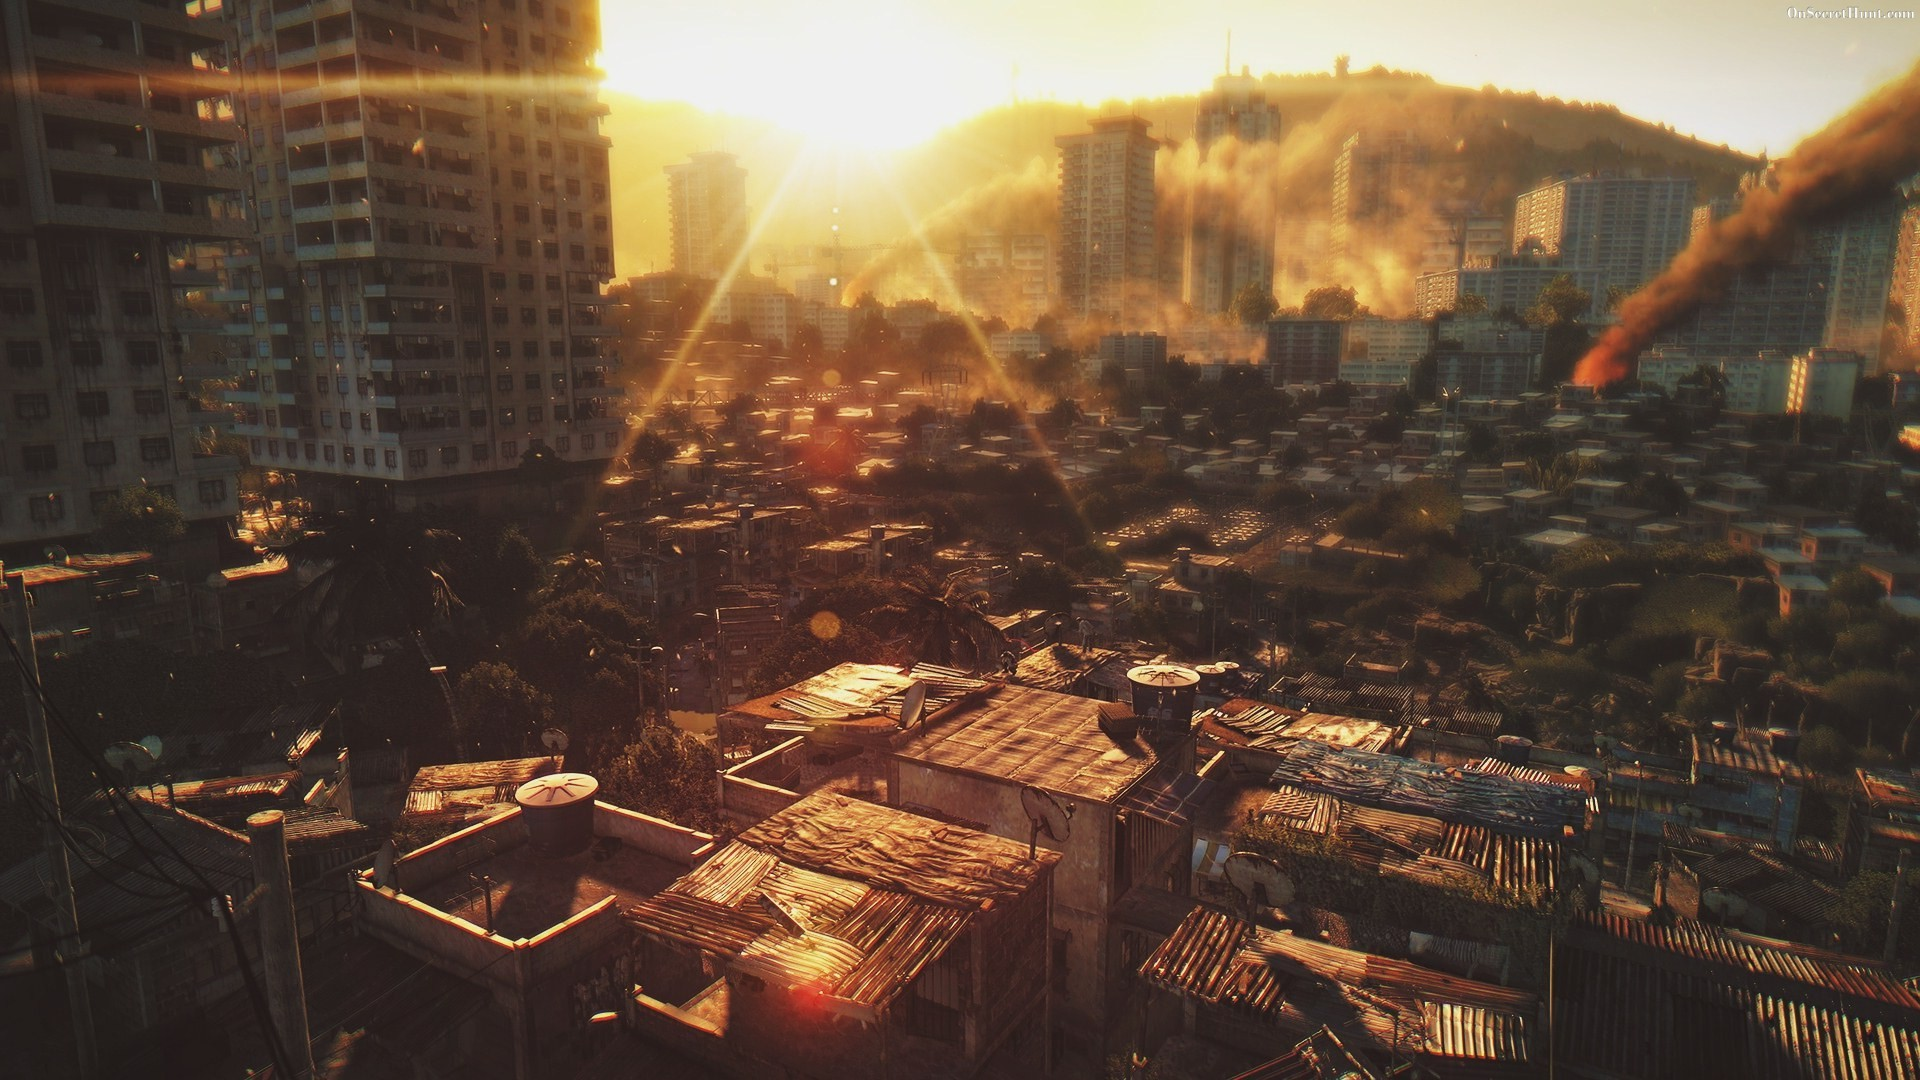 Dying Light Hd Wallpaper Pic Wje0016174 Dying Light